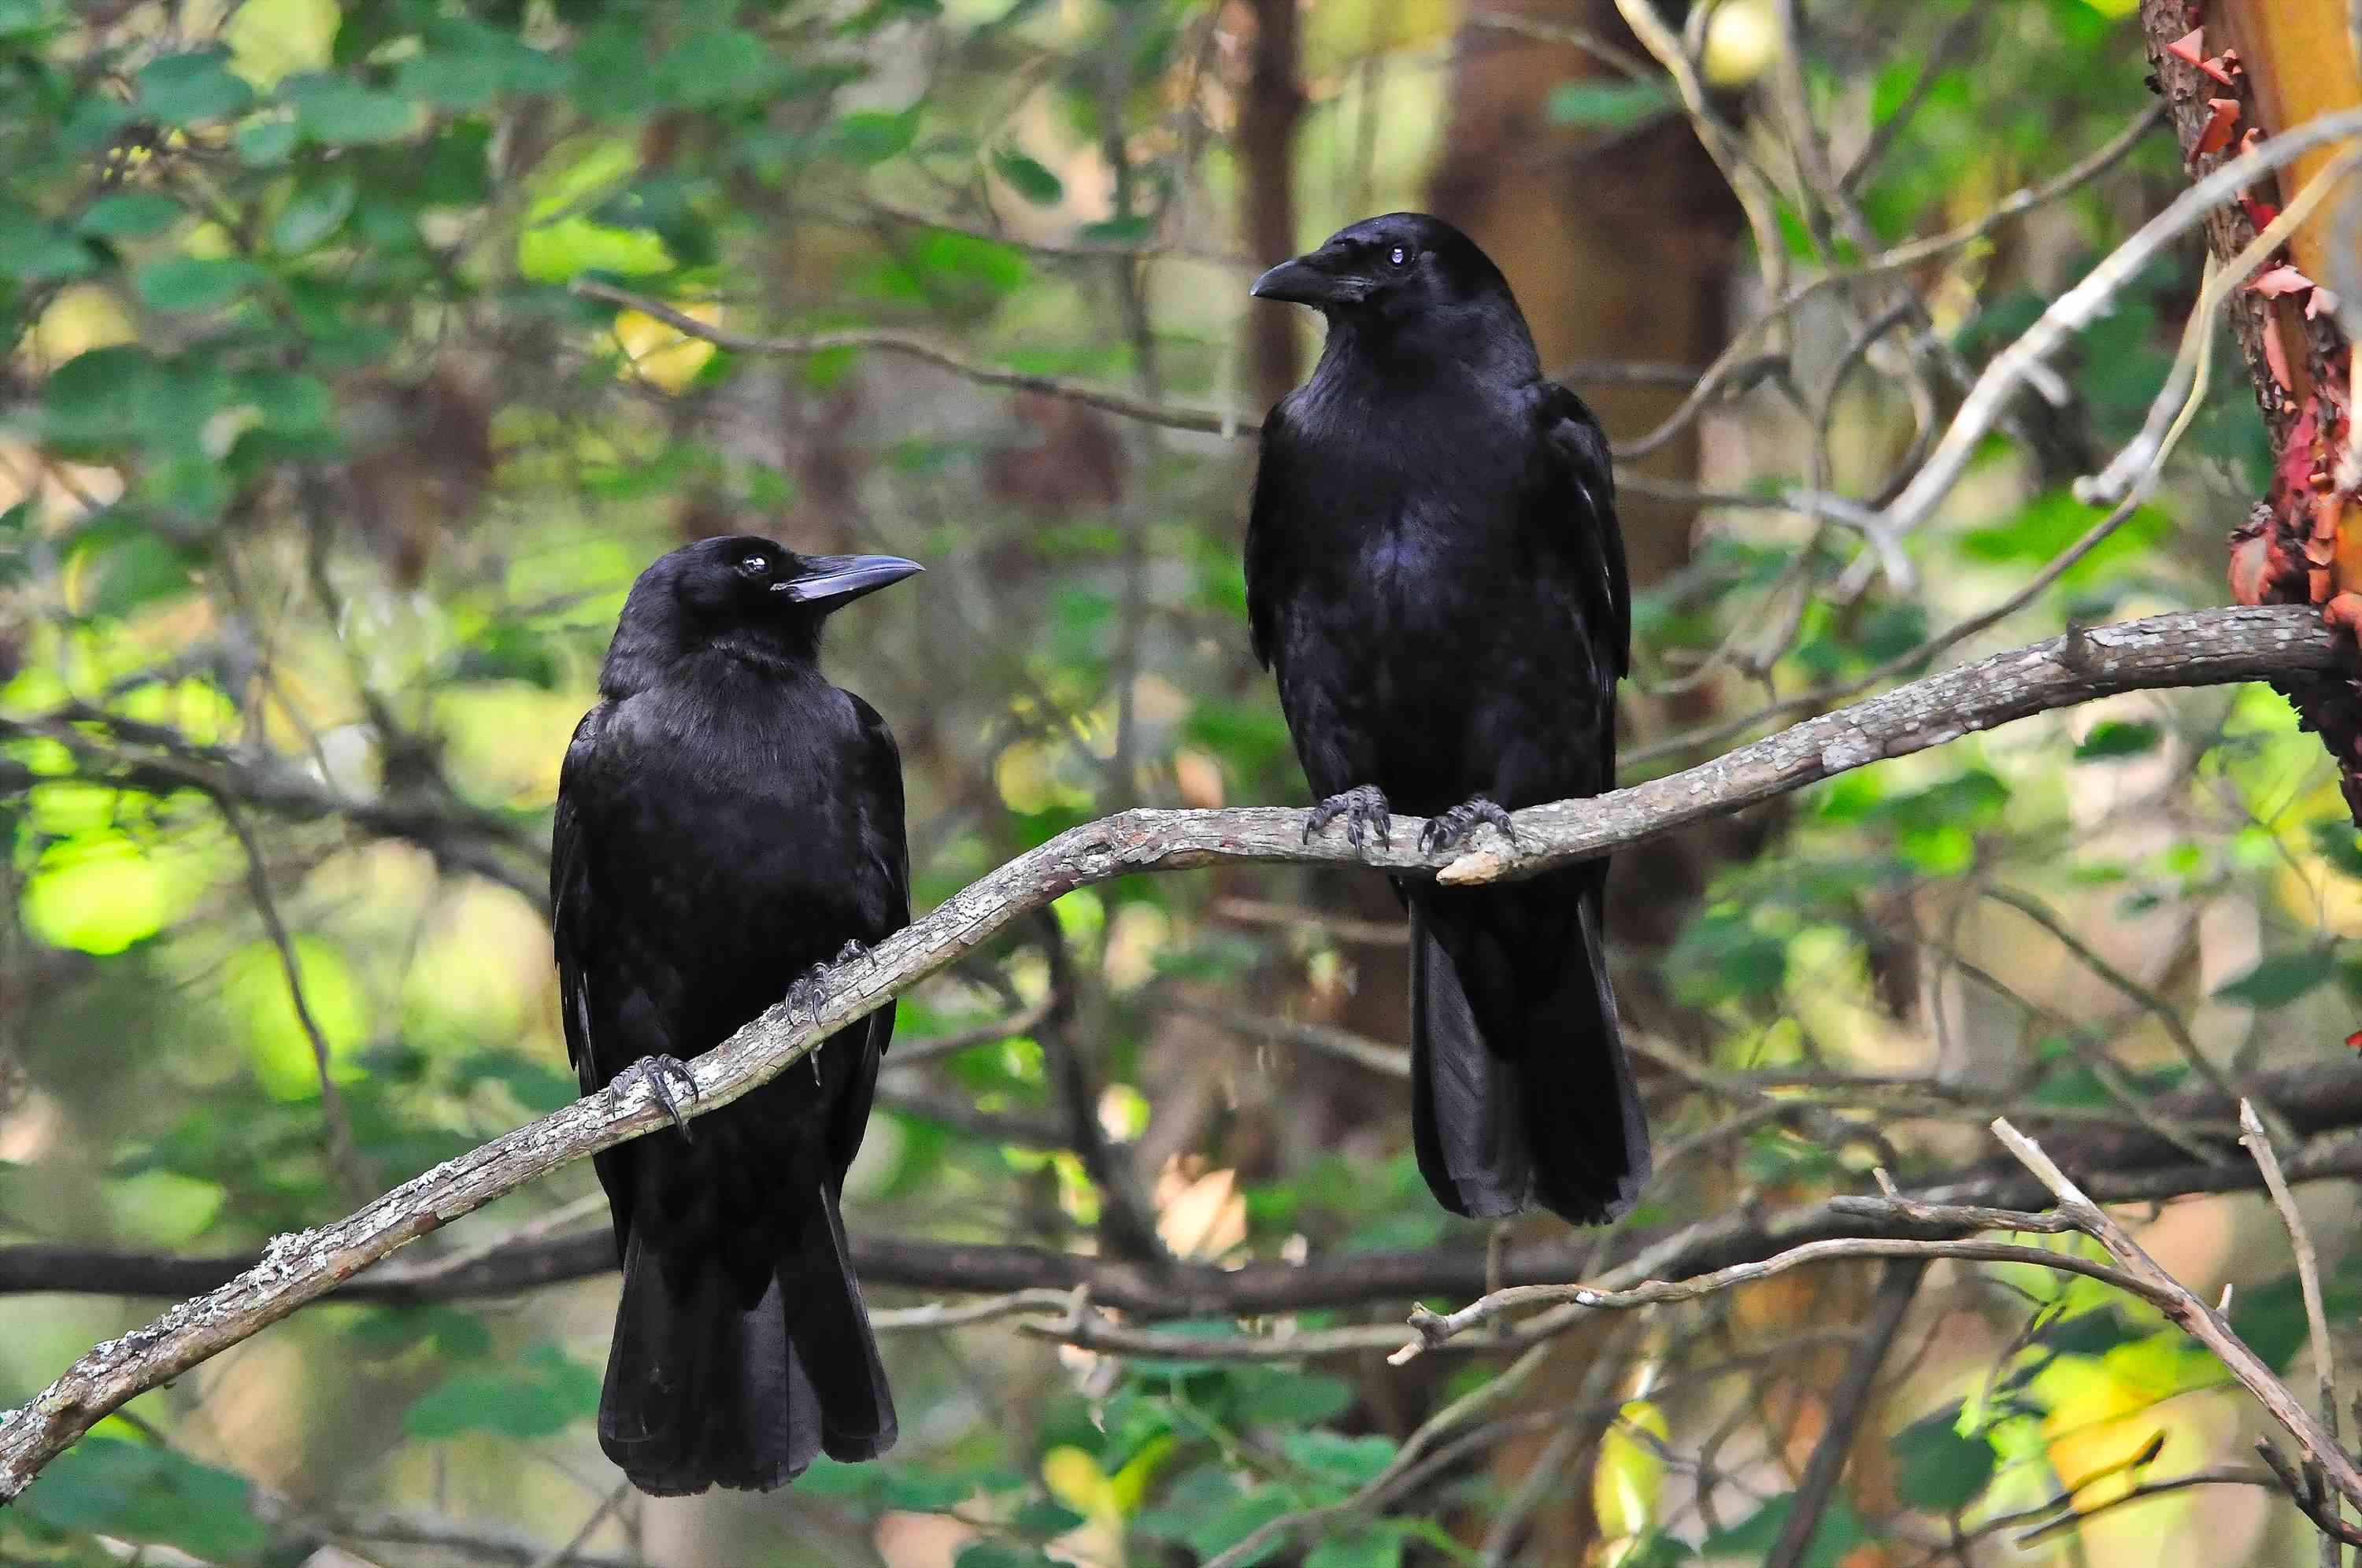 mated pair of crows perching in a tree in Washington state